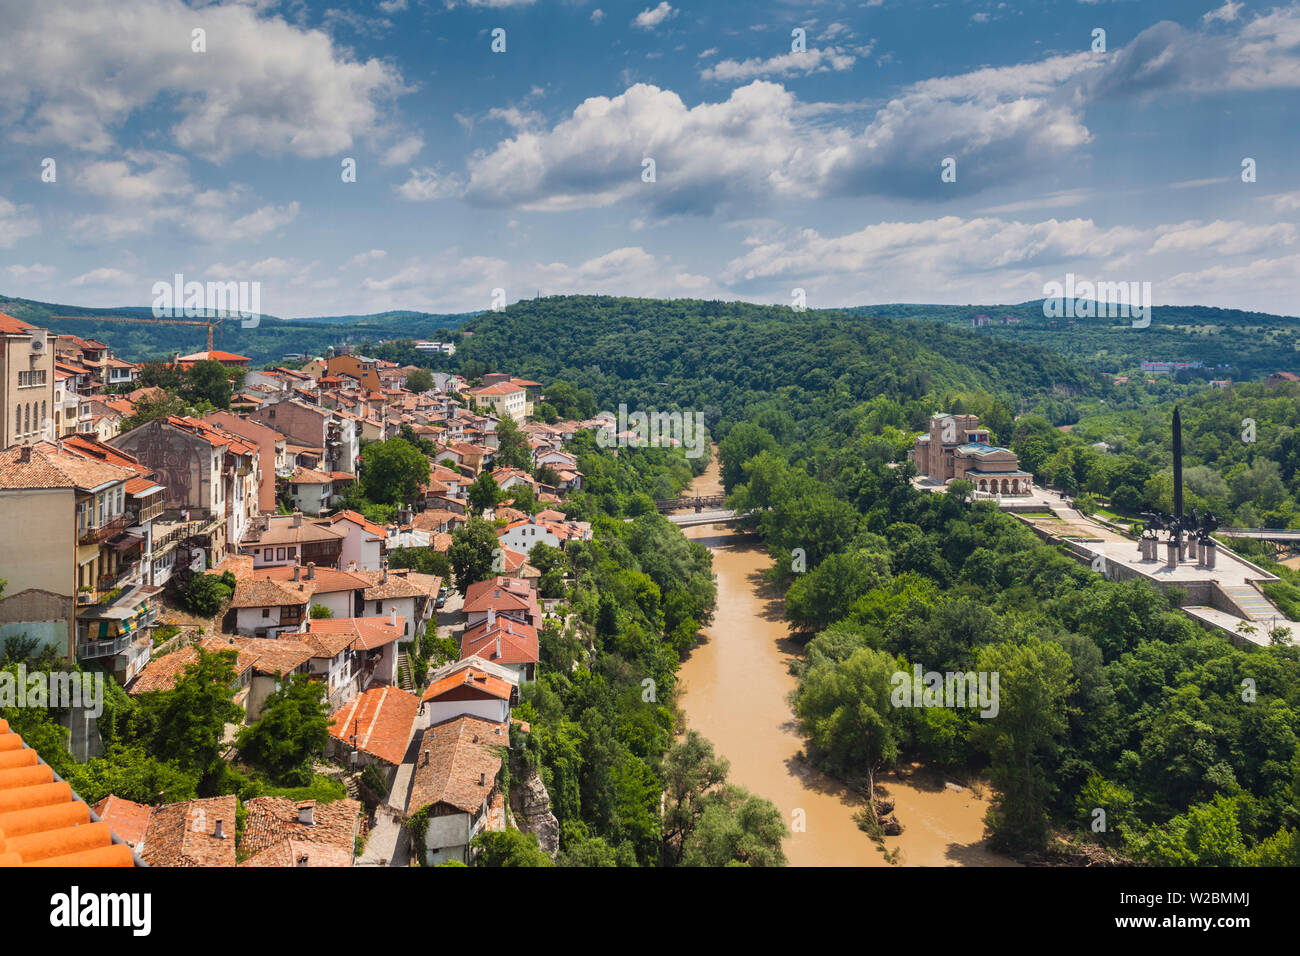 Bulgaria, Central Mountains, Veliko Tarnovo, elevated view of Varosha, Old Town Stock Photo